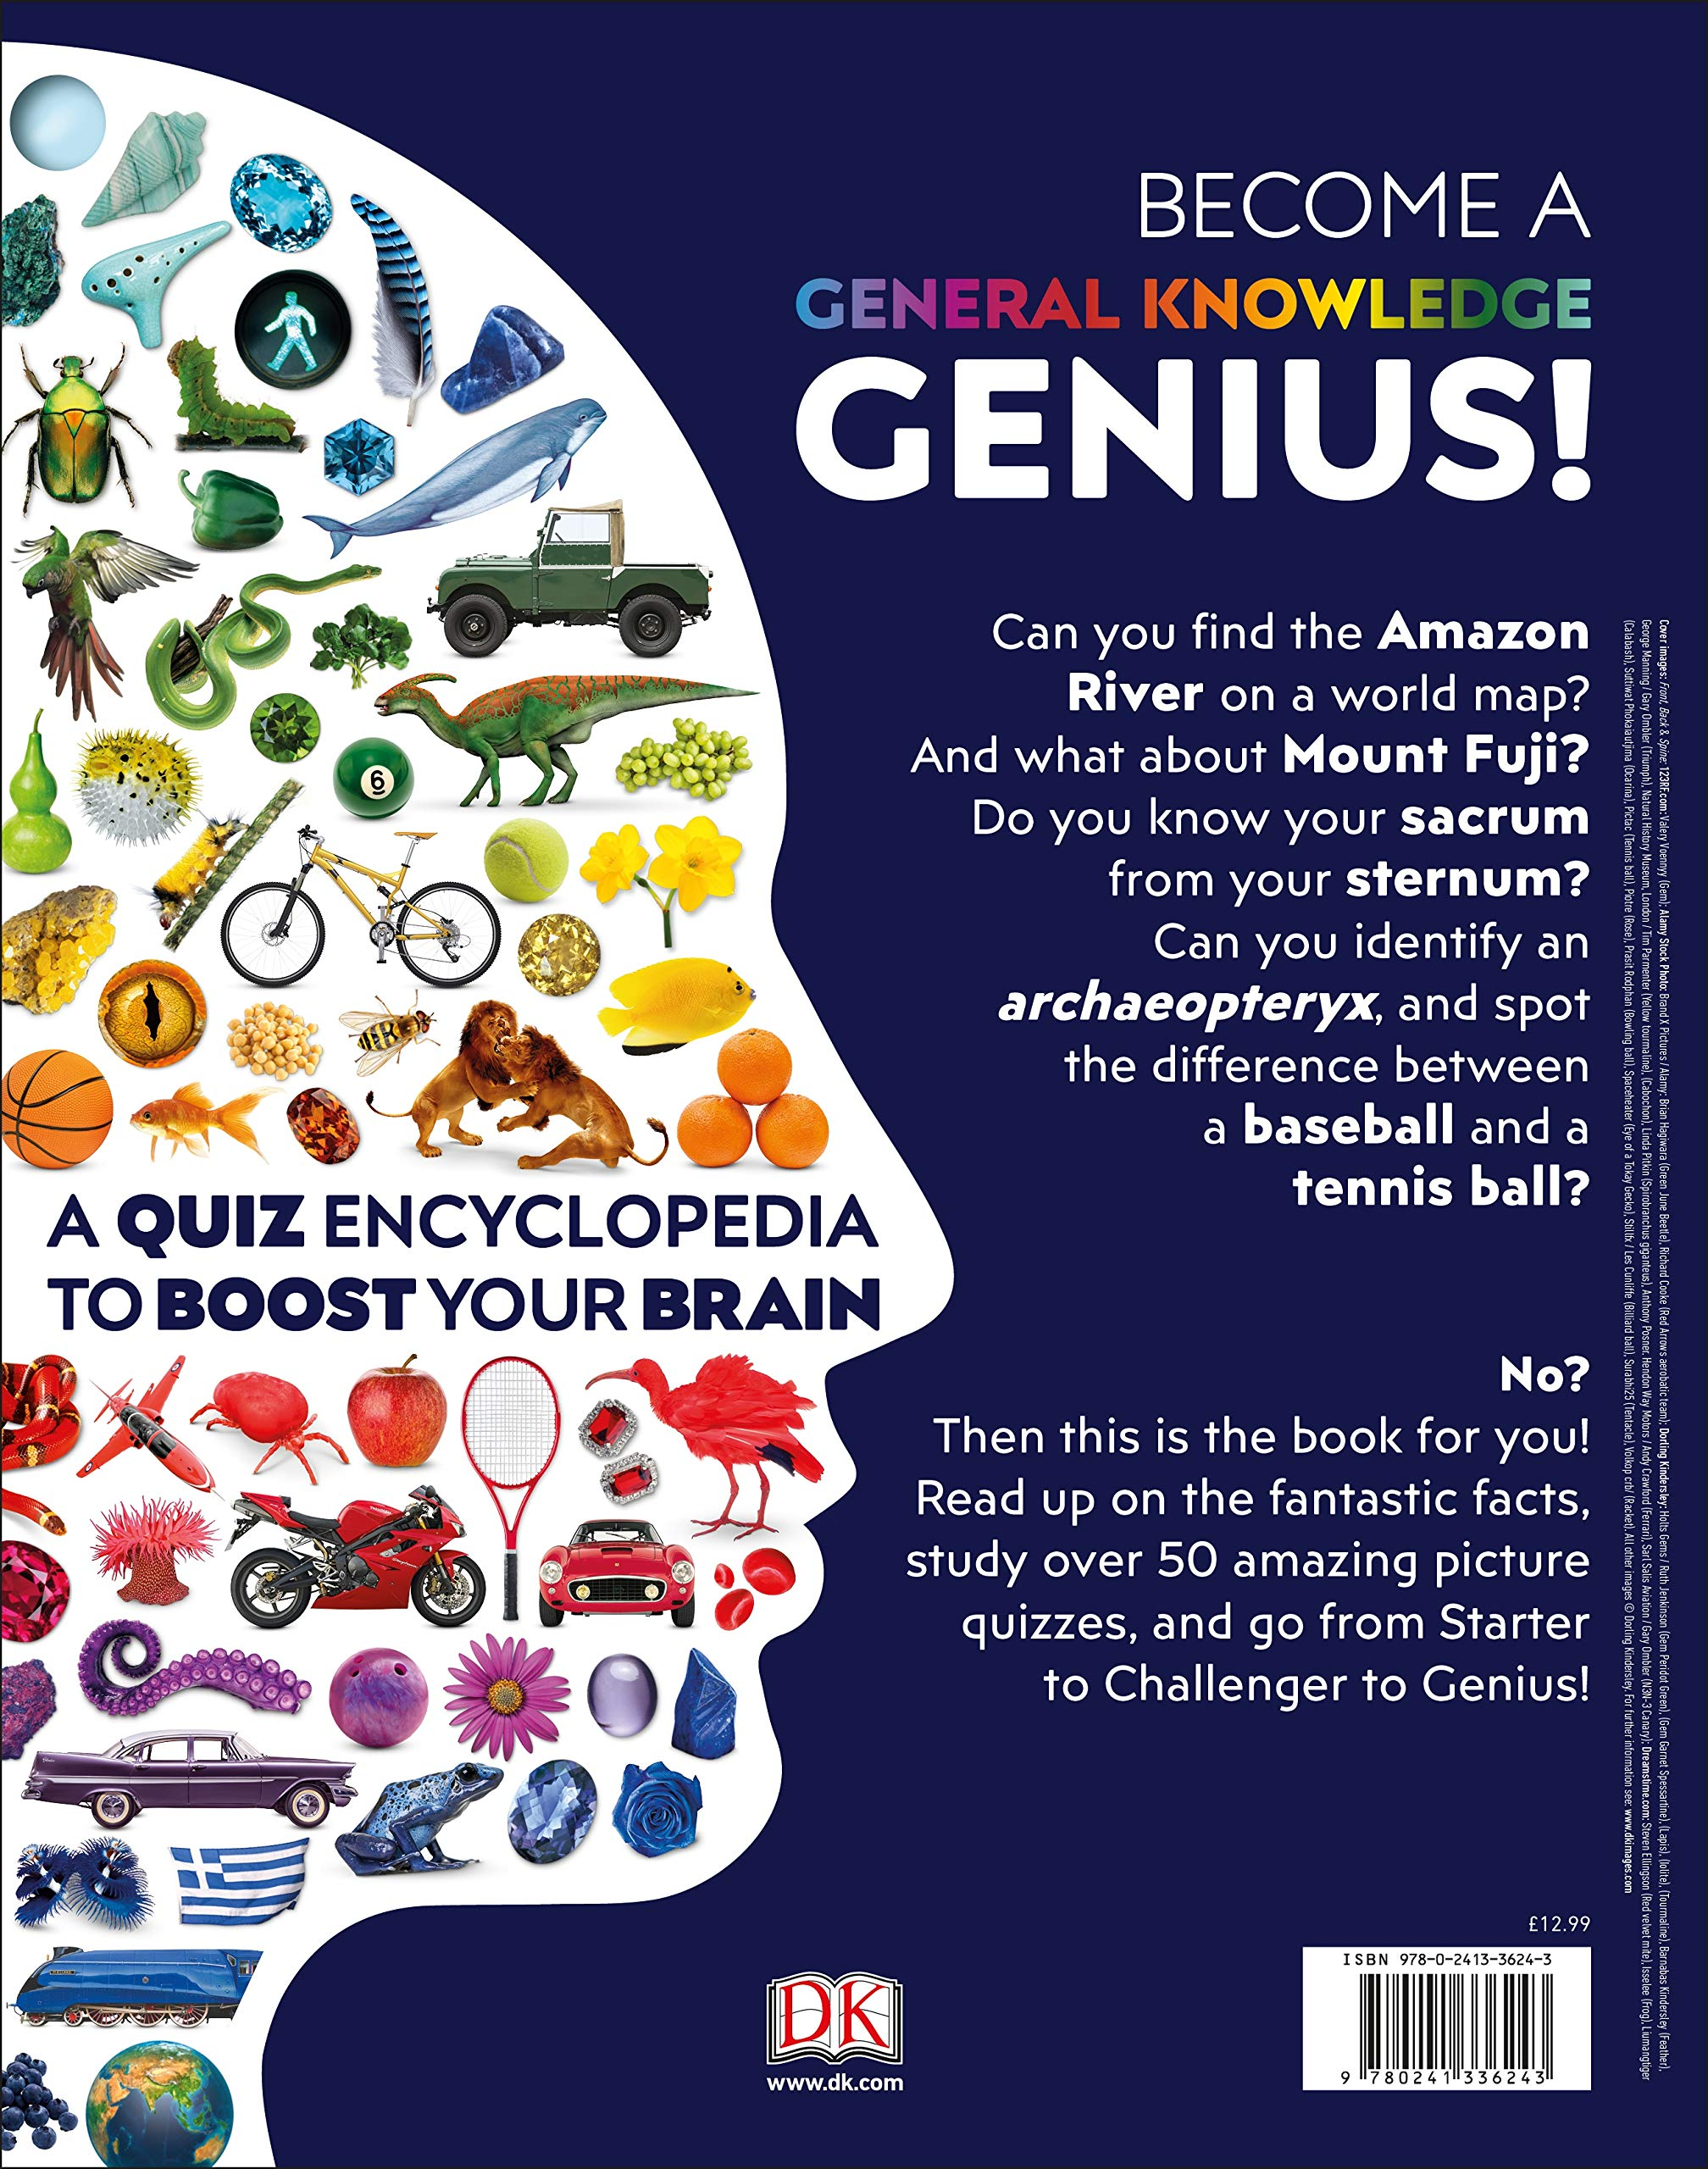 General Knowledge Genius!: A Quiz Encyclopedia to Boost Your